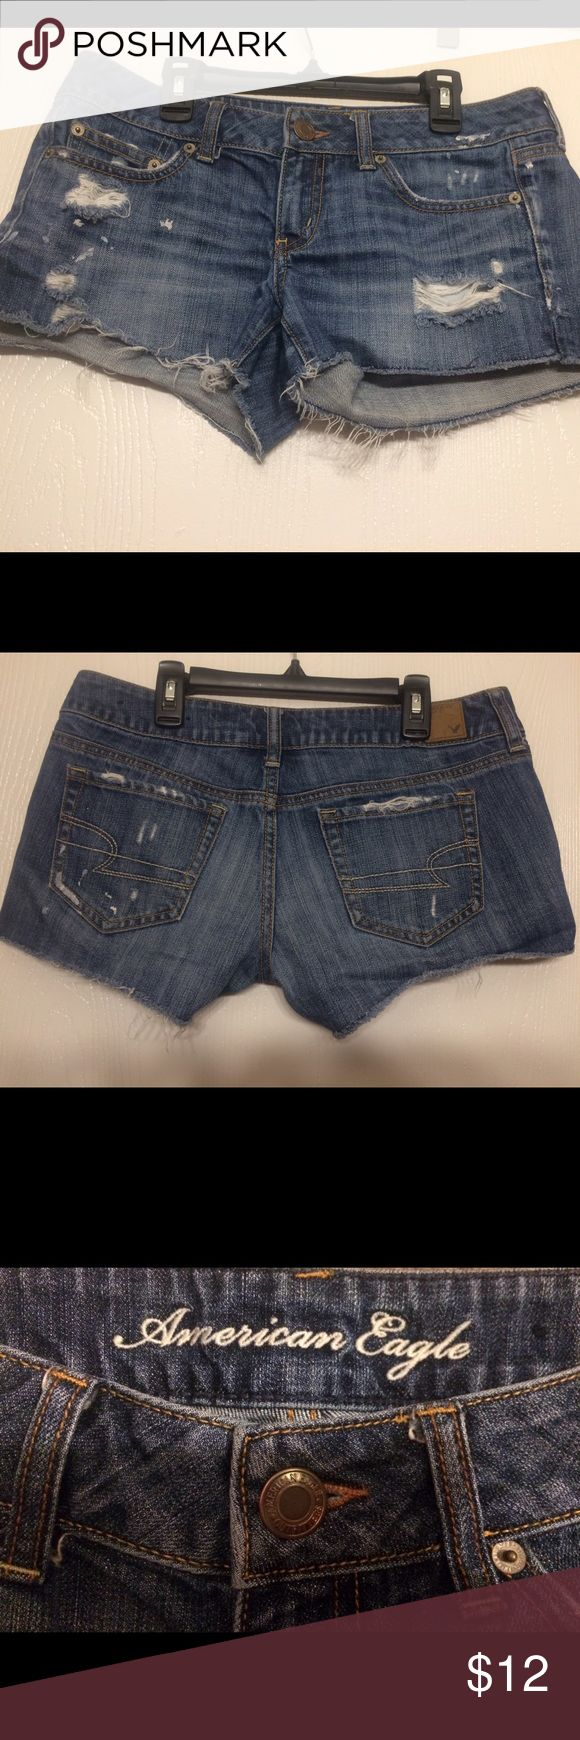 American Eagle Jean cutoff shorts AE cutoff jean shorts. 1 inch cut slits up the sides. In good condition. The tag says size 6, but I'm a size 4 in most jeans and these fit me great. American Eagle Outfitters Shorts Jean Shorts